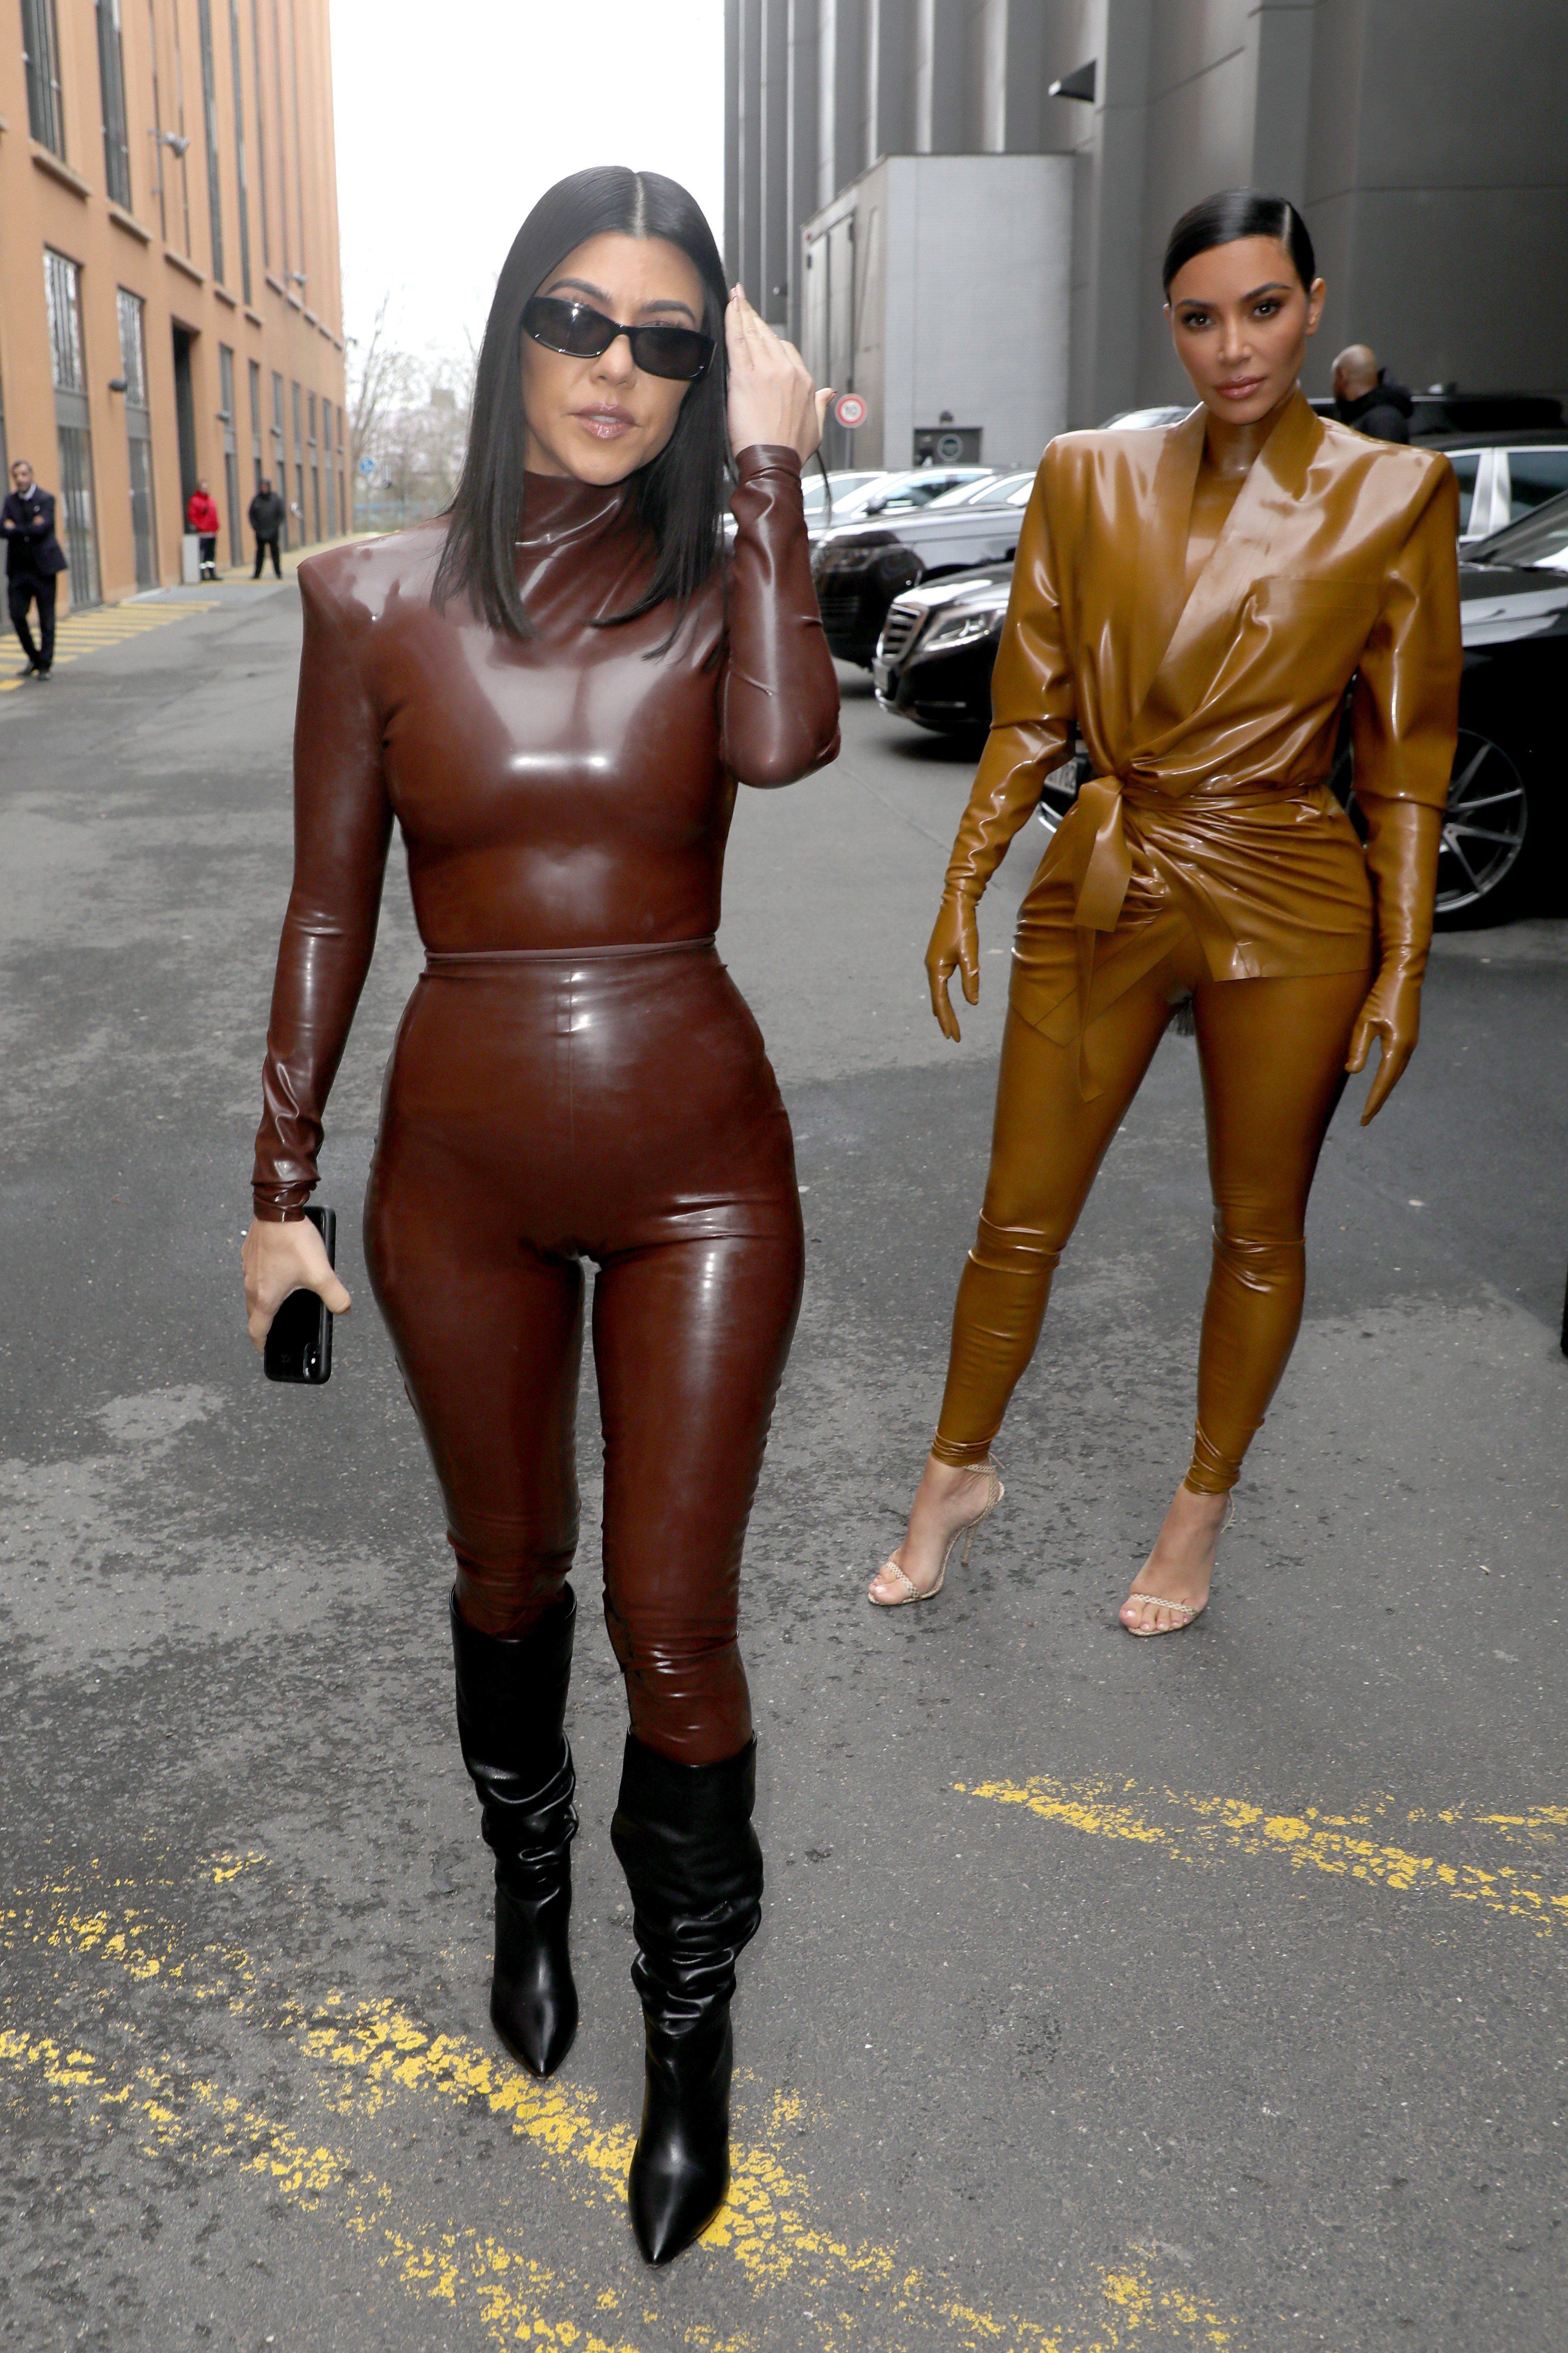 Kourtney and Kim Kardashian attend the Balenciaga Show during Paris Fashion Week in France on March 1, 2020 | Photo: Getty Images